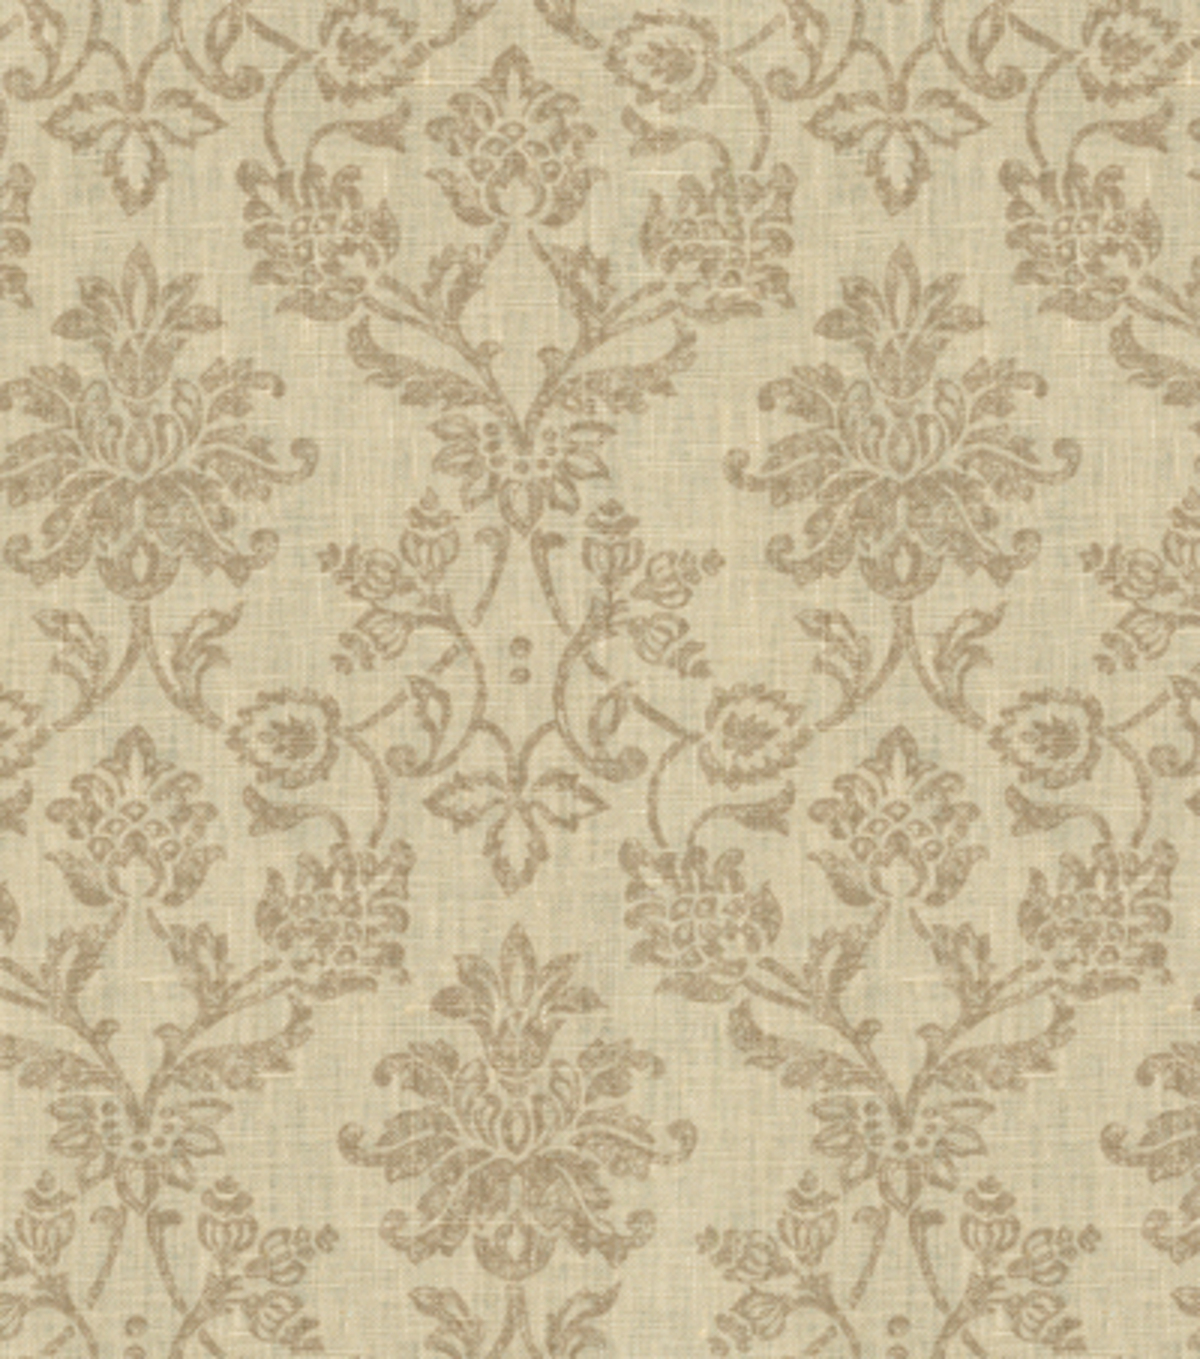 Home Decor 8\u0022x8\u0022 Fabric Swatch-Covington Isolde